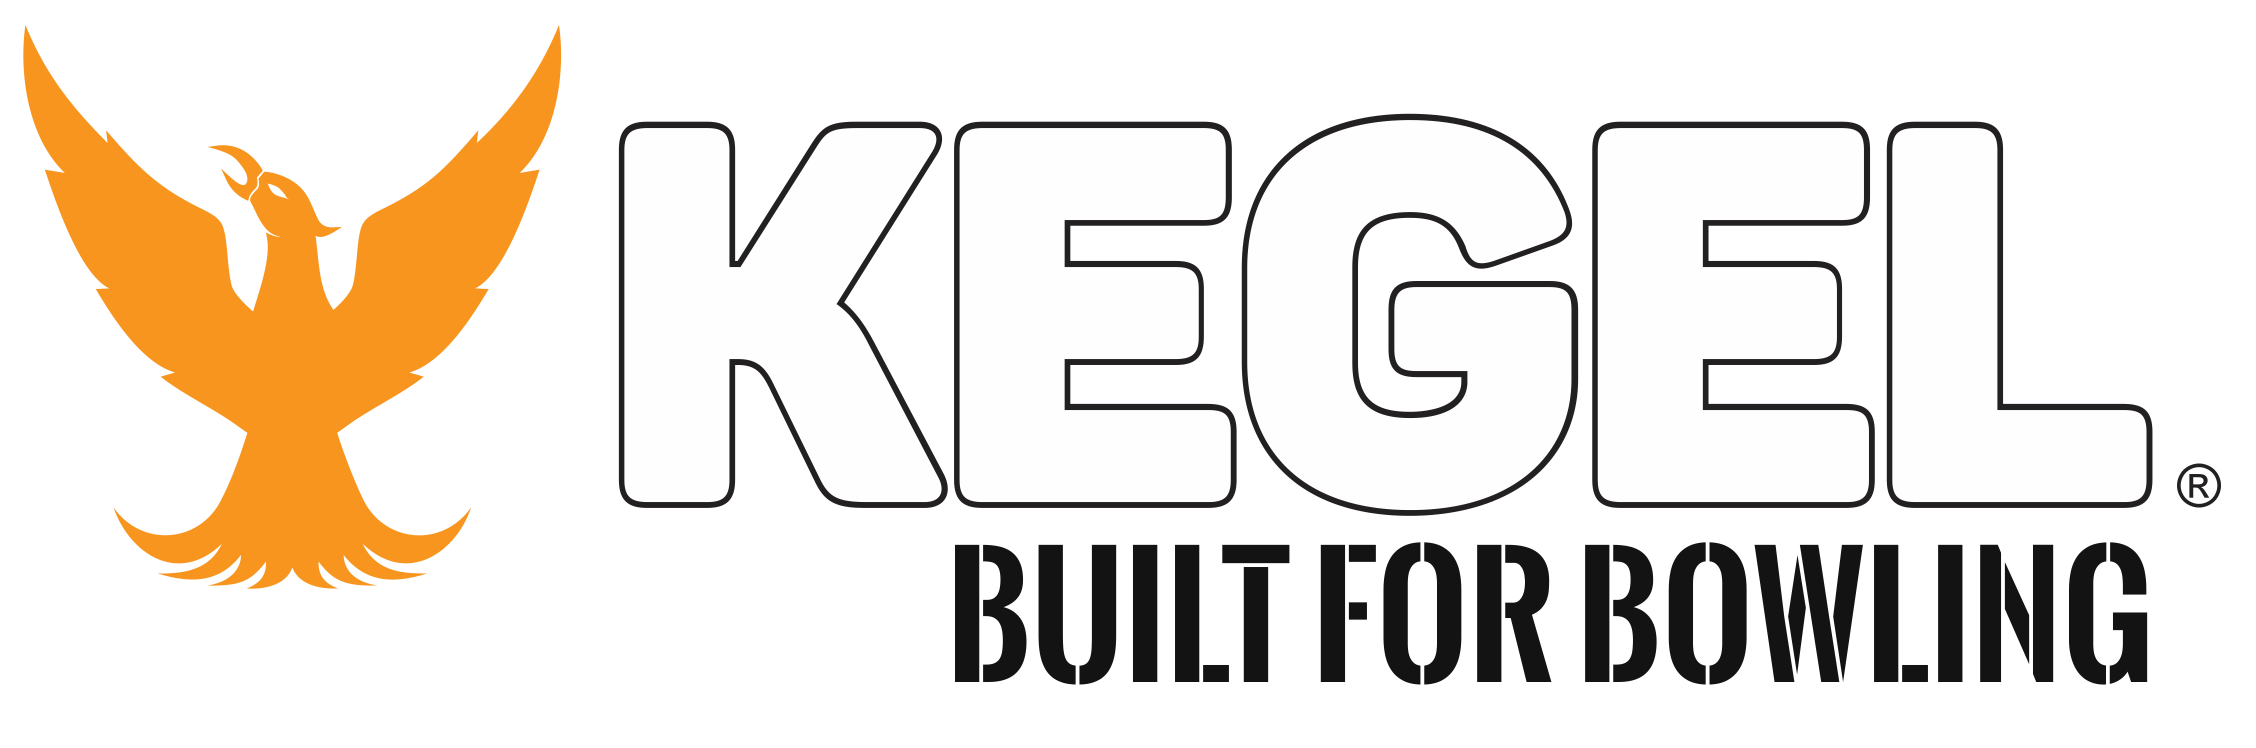 Kegel-horizontallogo-black-slogan-big.png